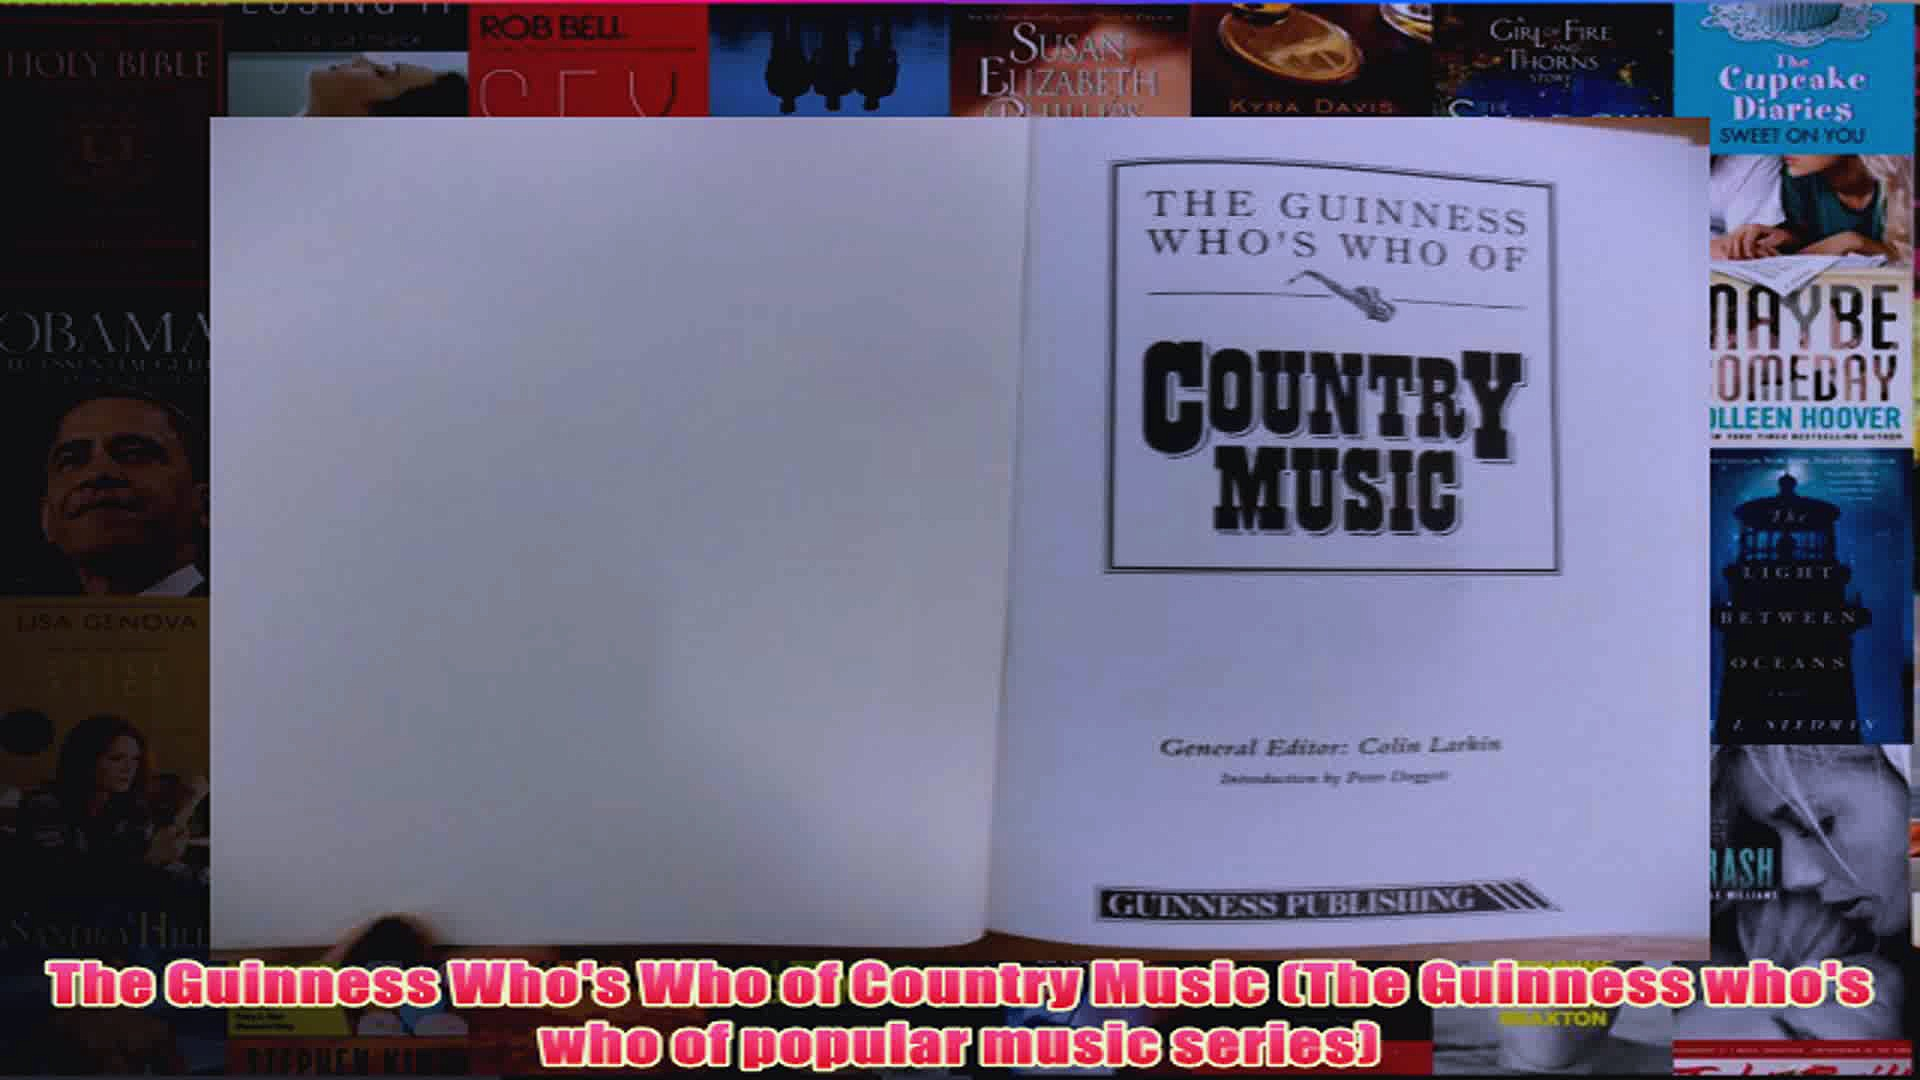 The Guinness Whos Who of Country Music The Guinness whos who of popular music series